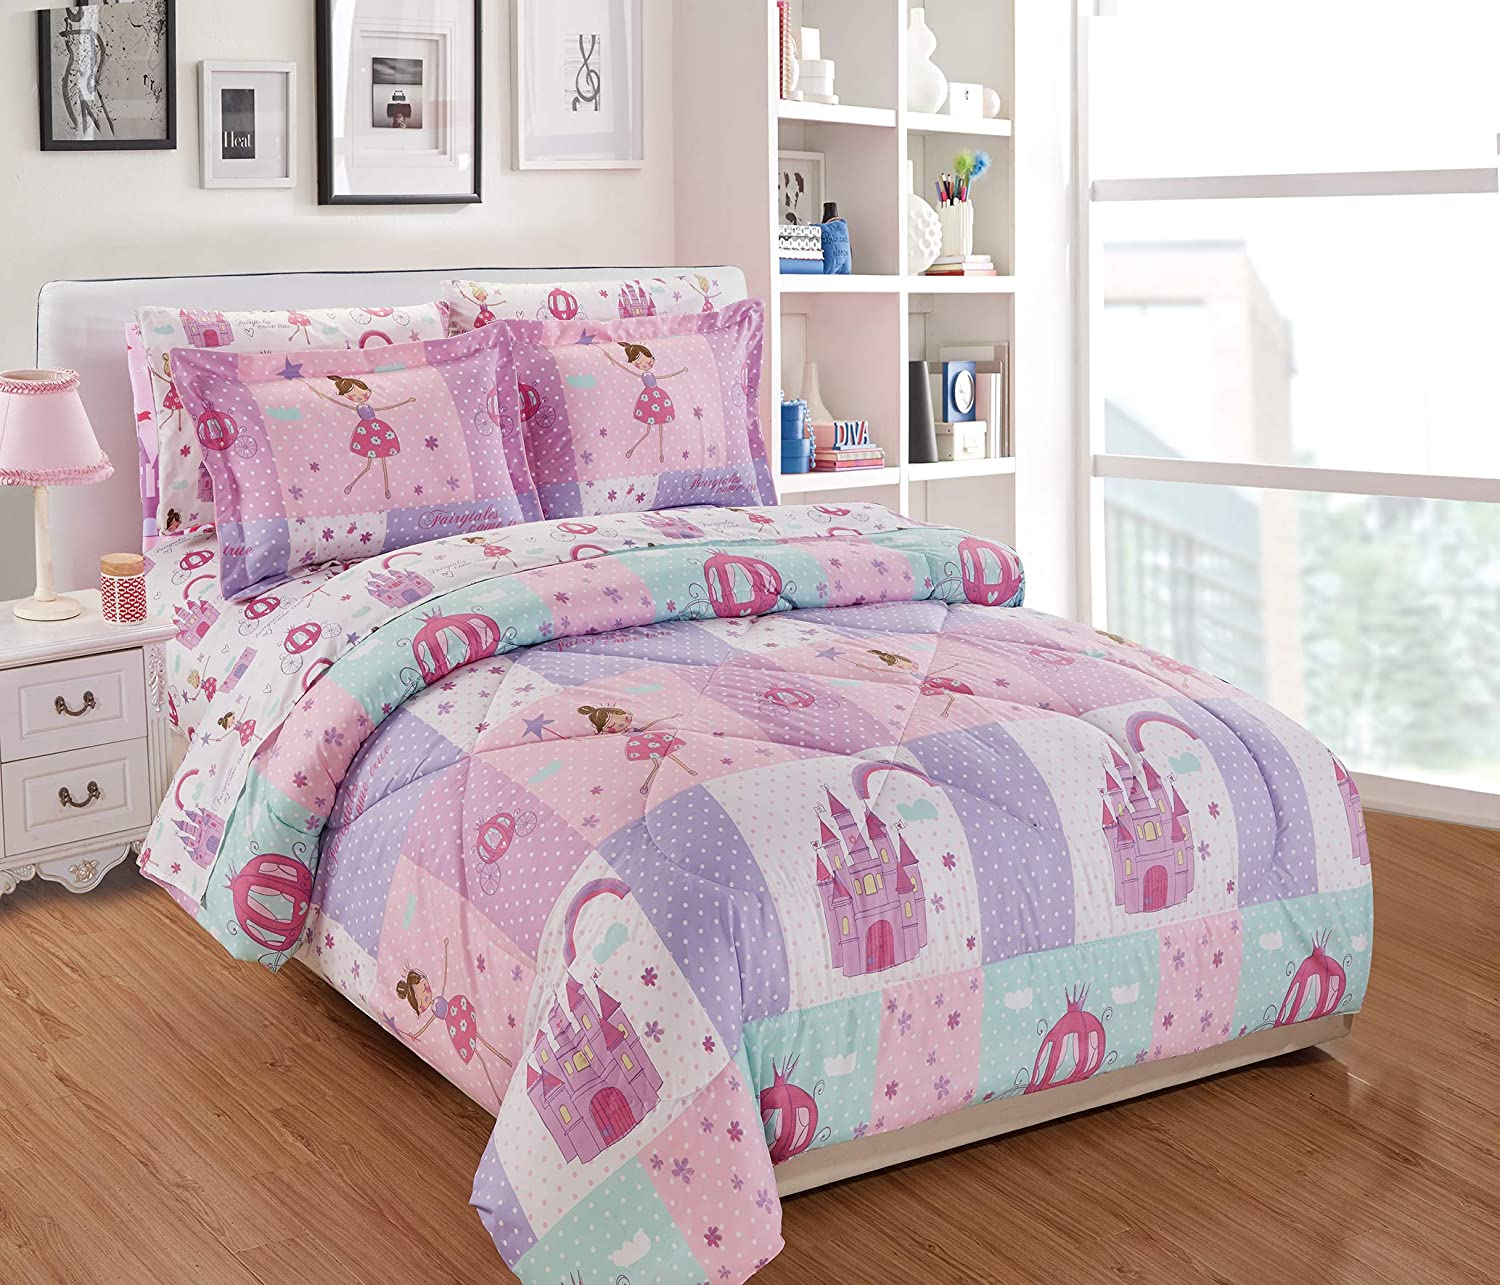 Mk Home 5pc Twin Size Comforter Set for Girls Princess Fairy Tales Castles Pink White Lavender New